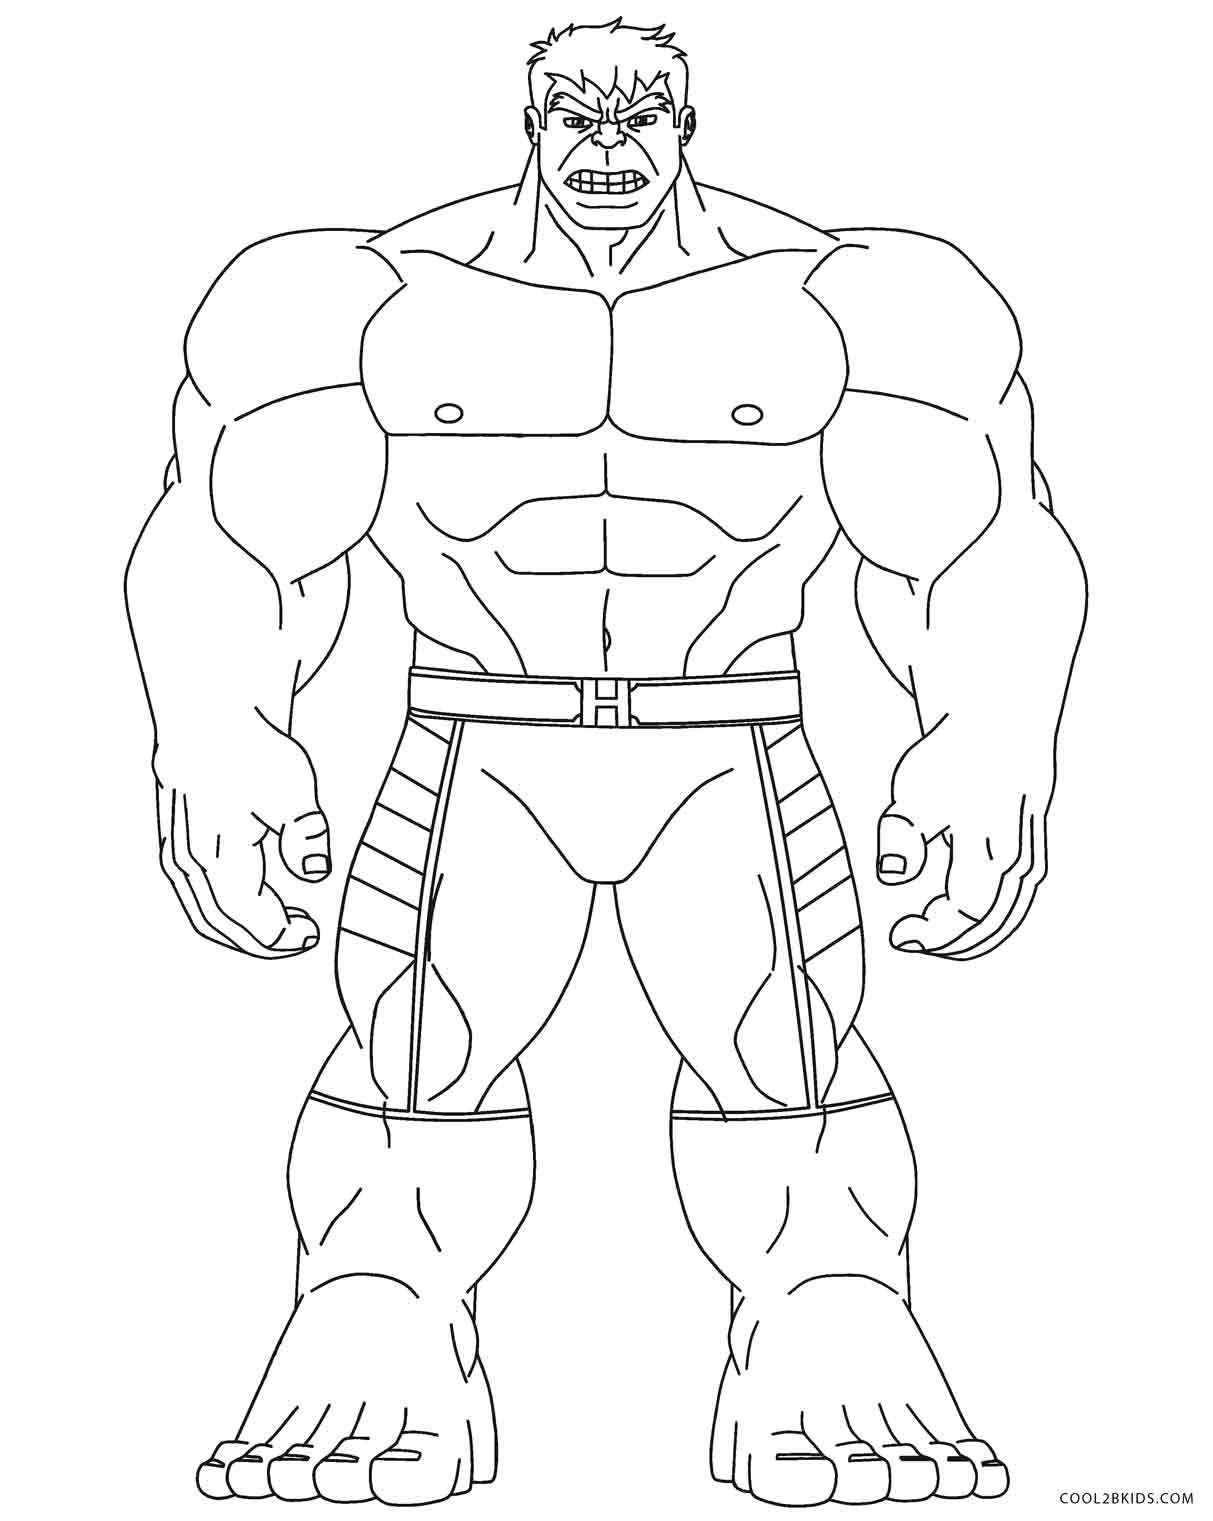 coloring pages incredible hulk free printable hulk coloring pages for kids cool2bkids hulk coloring pages incredible